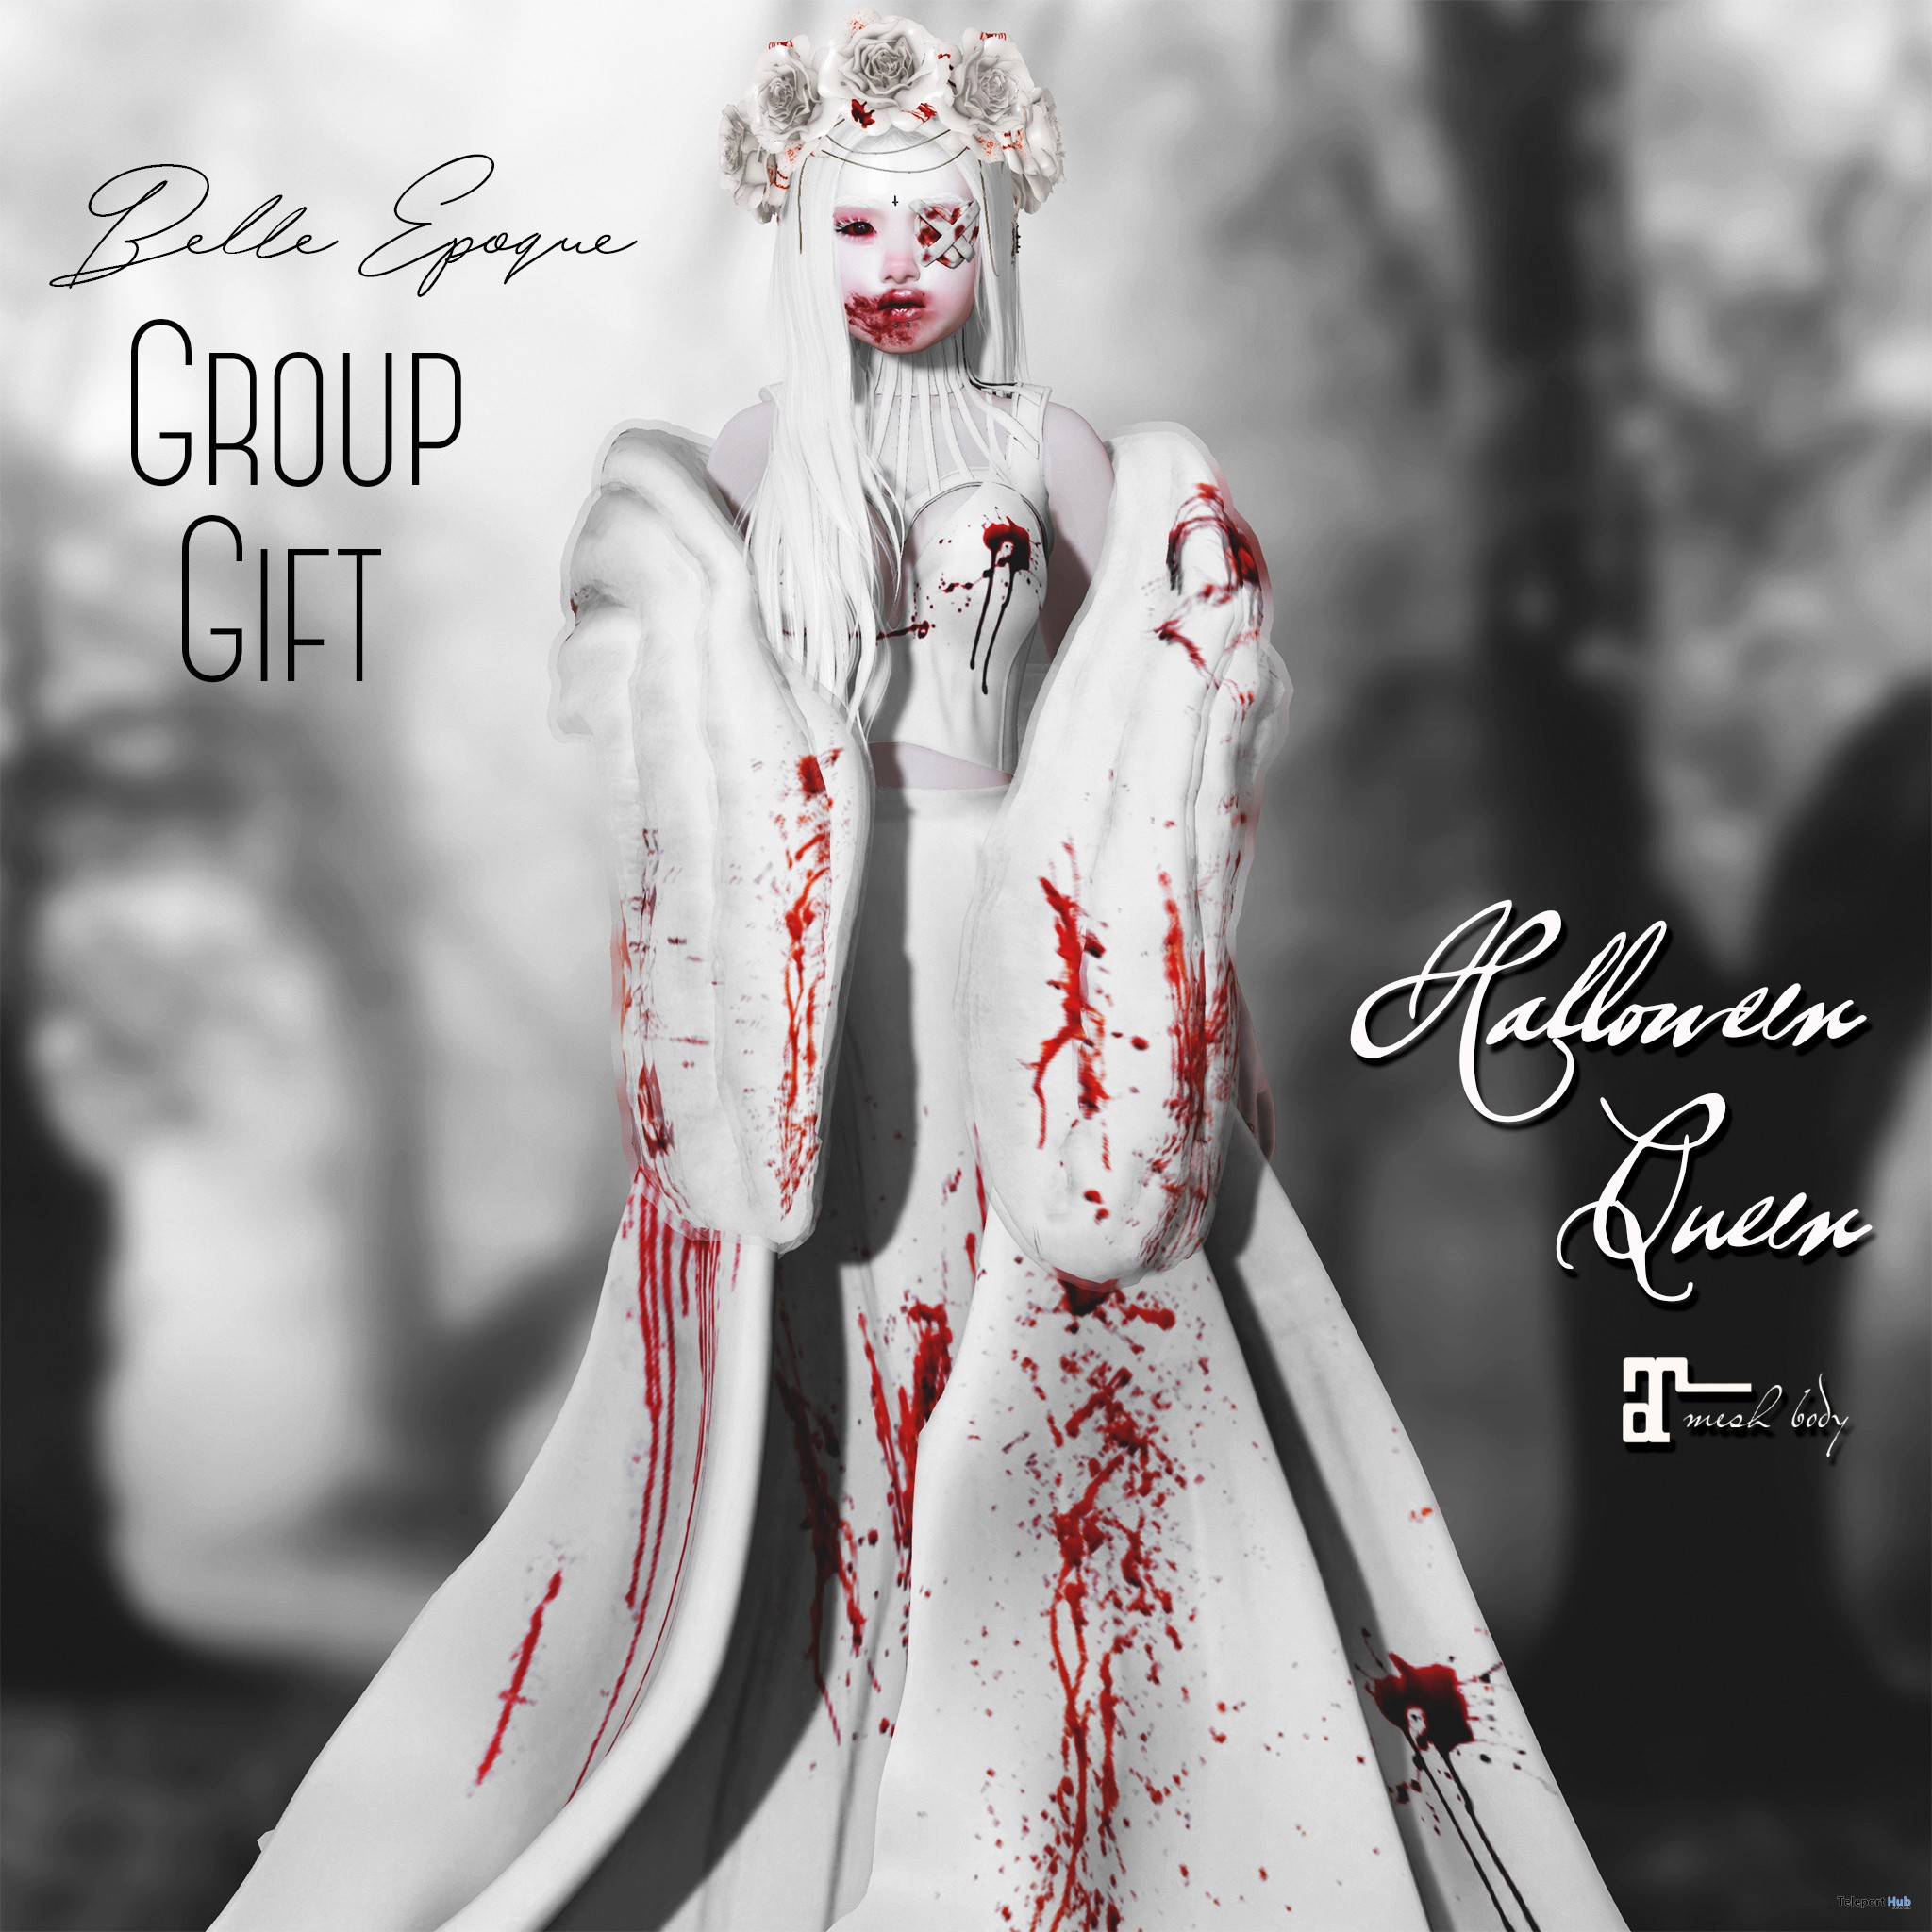 Halloween Queen Outfit September 2018 Group Gift by Belle Epoque - Teleport Hub - teleporthub.com